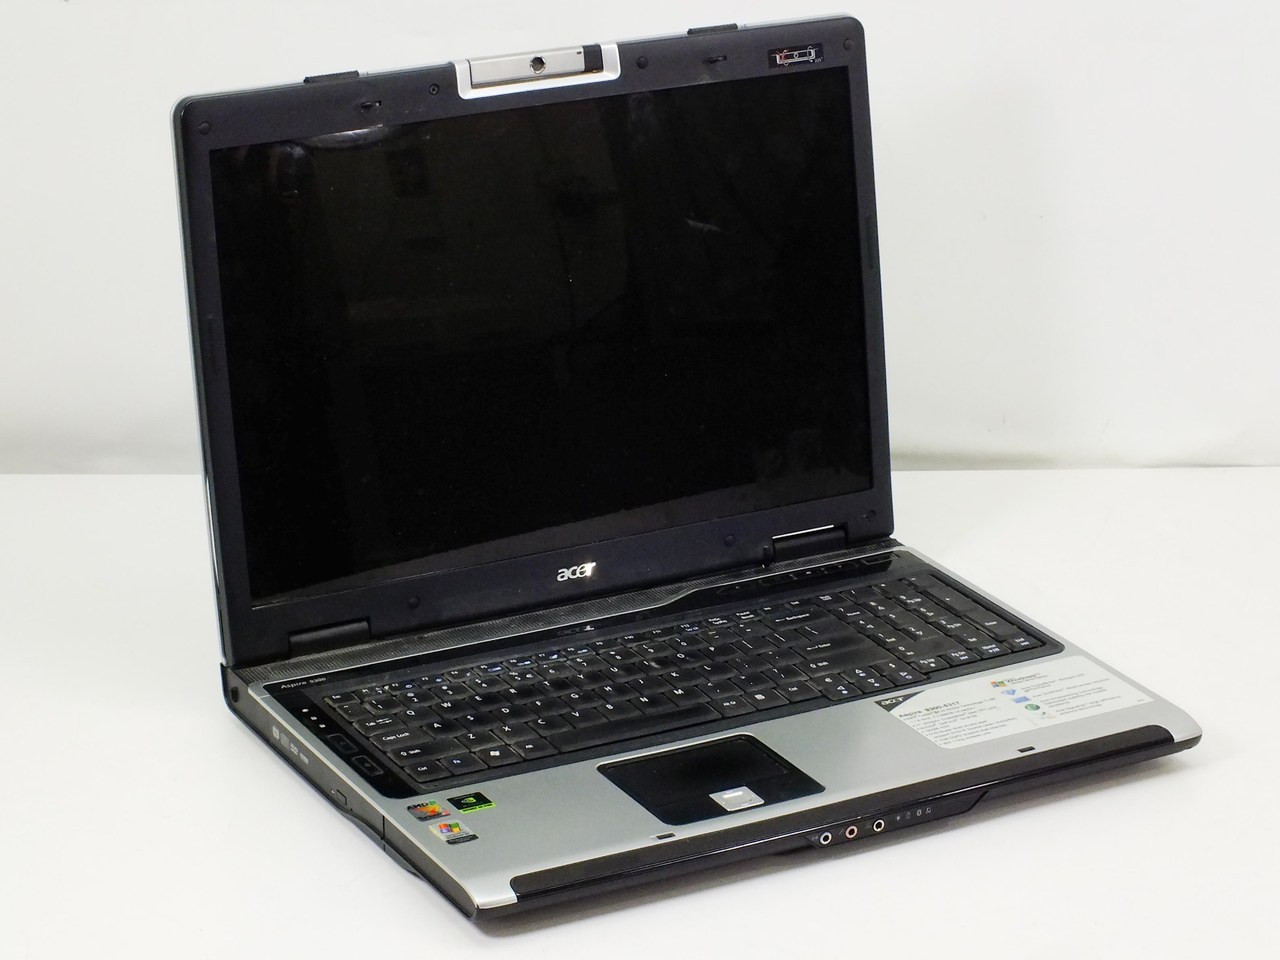 ACER ASPIRE 9300 WIRELESS LAN DRIVERS WINDOWS 7